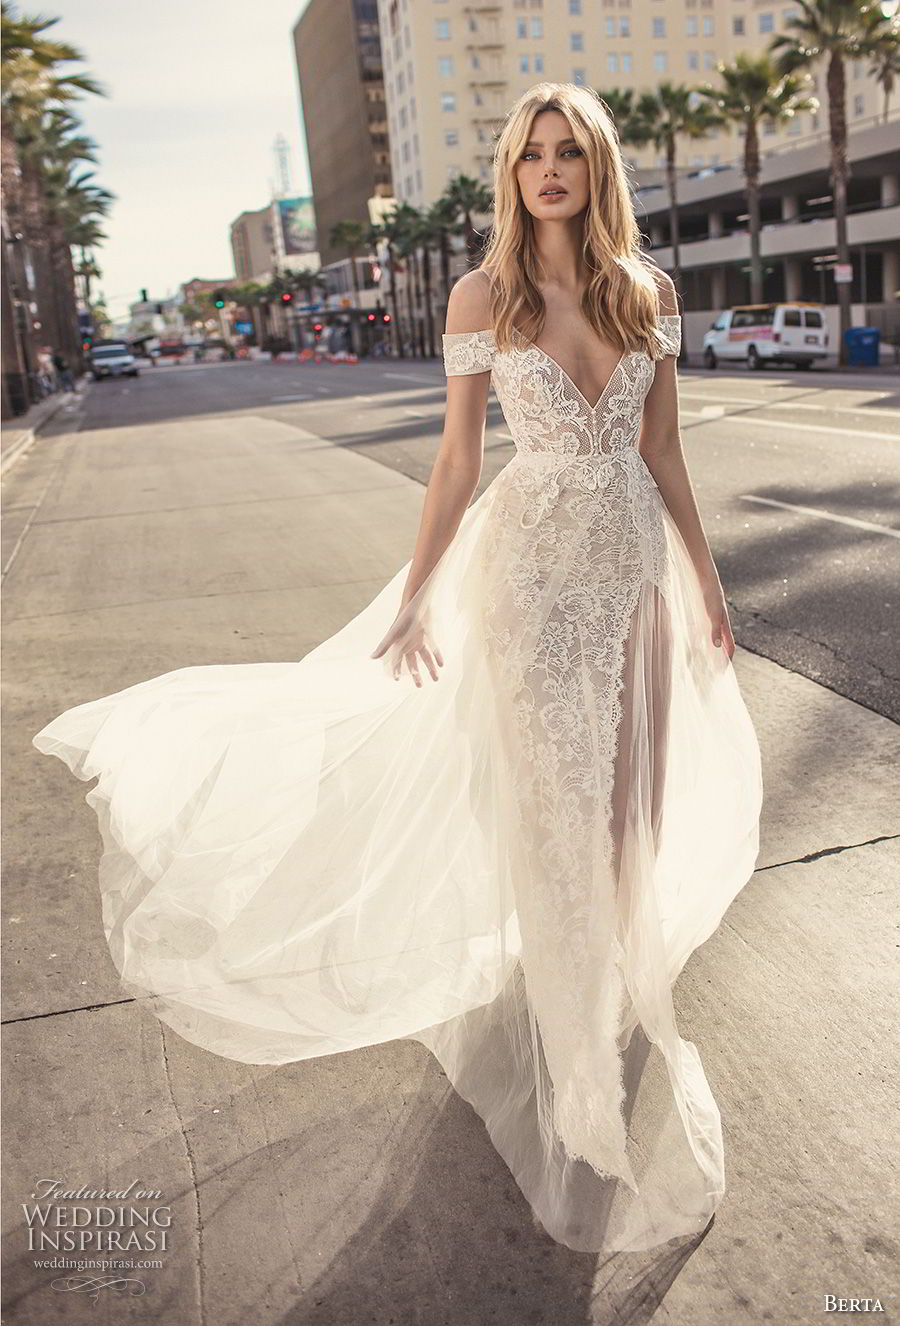 berta 2019 muse bridal spaghetti strap cold shoulder v neck full embellishment romantic soft a line wedding dress scoop back sweep train (1) mv